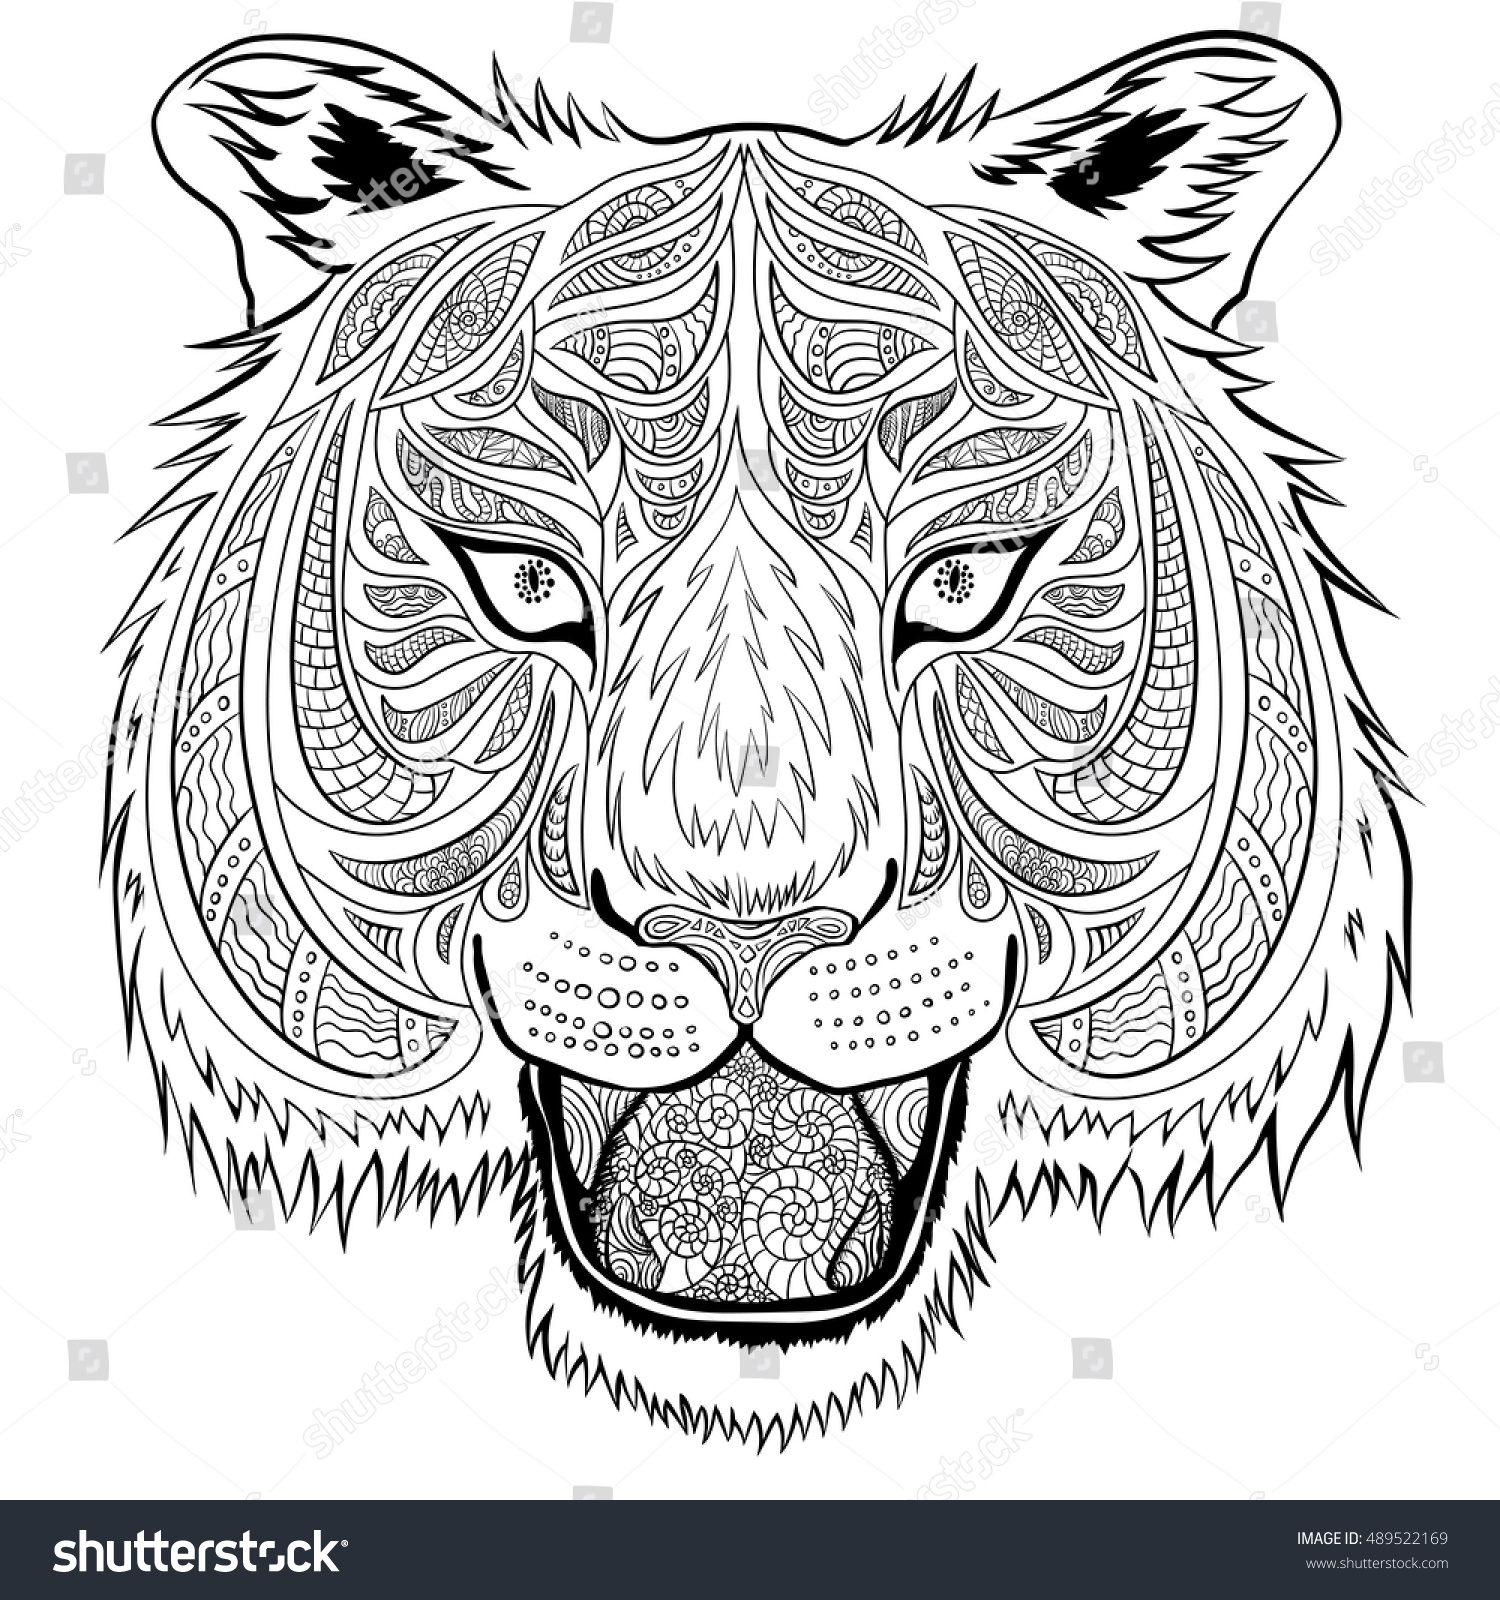 Tiger Head Hand Drawn Doodle Style It Can Be Used For Adult Coloring Book